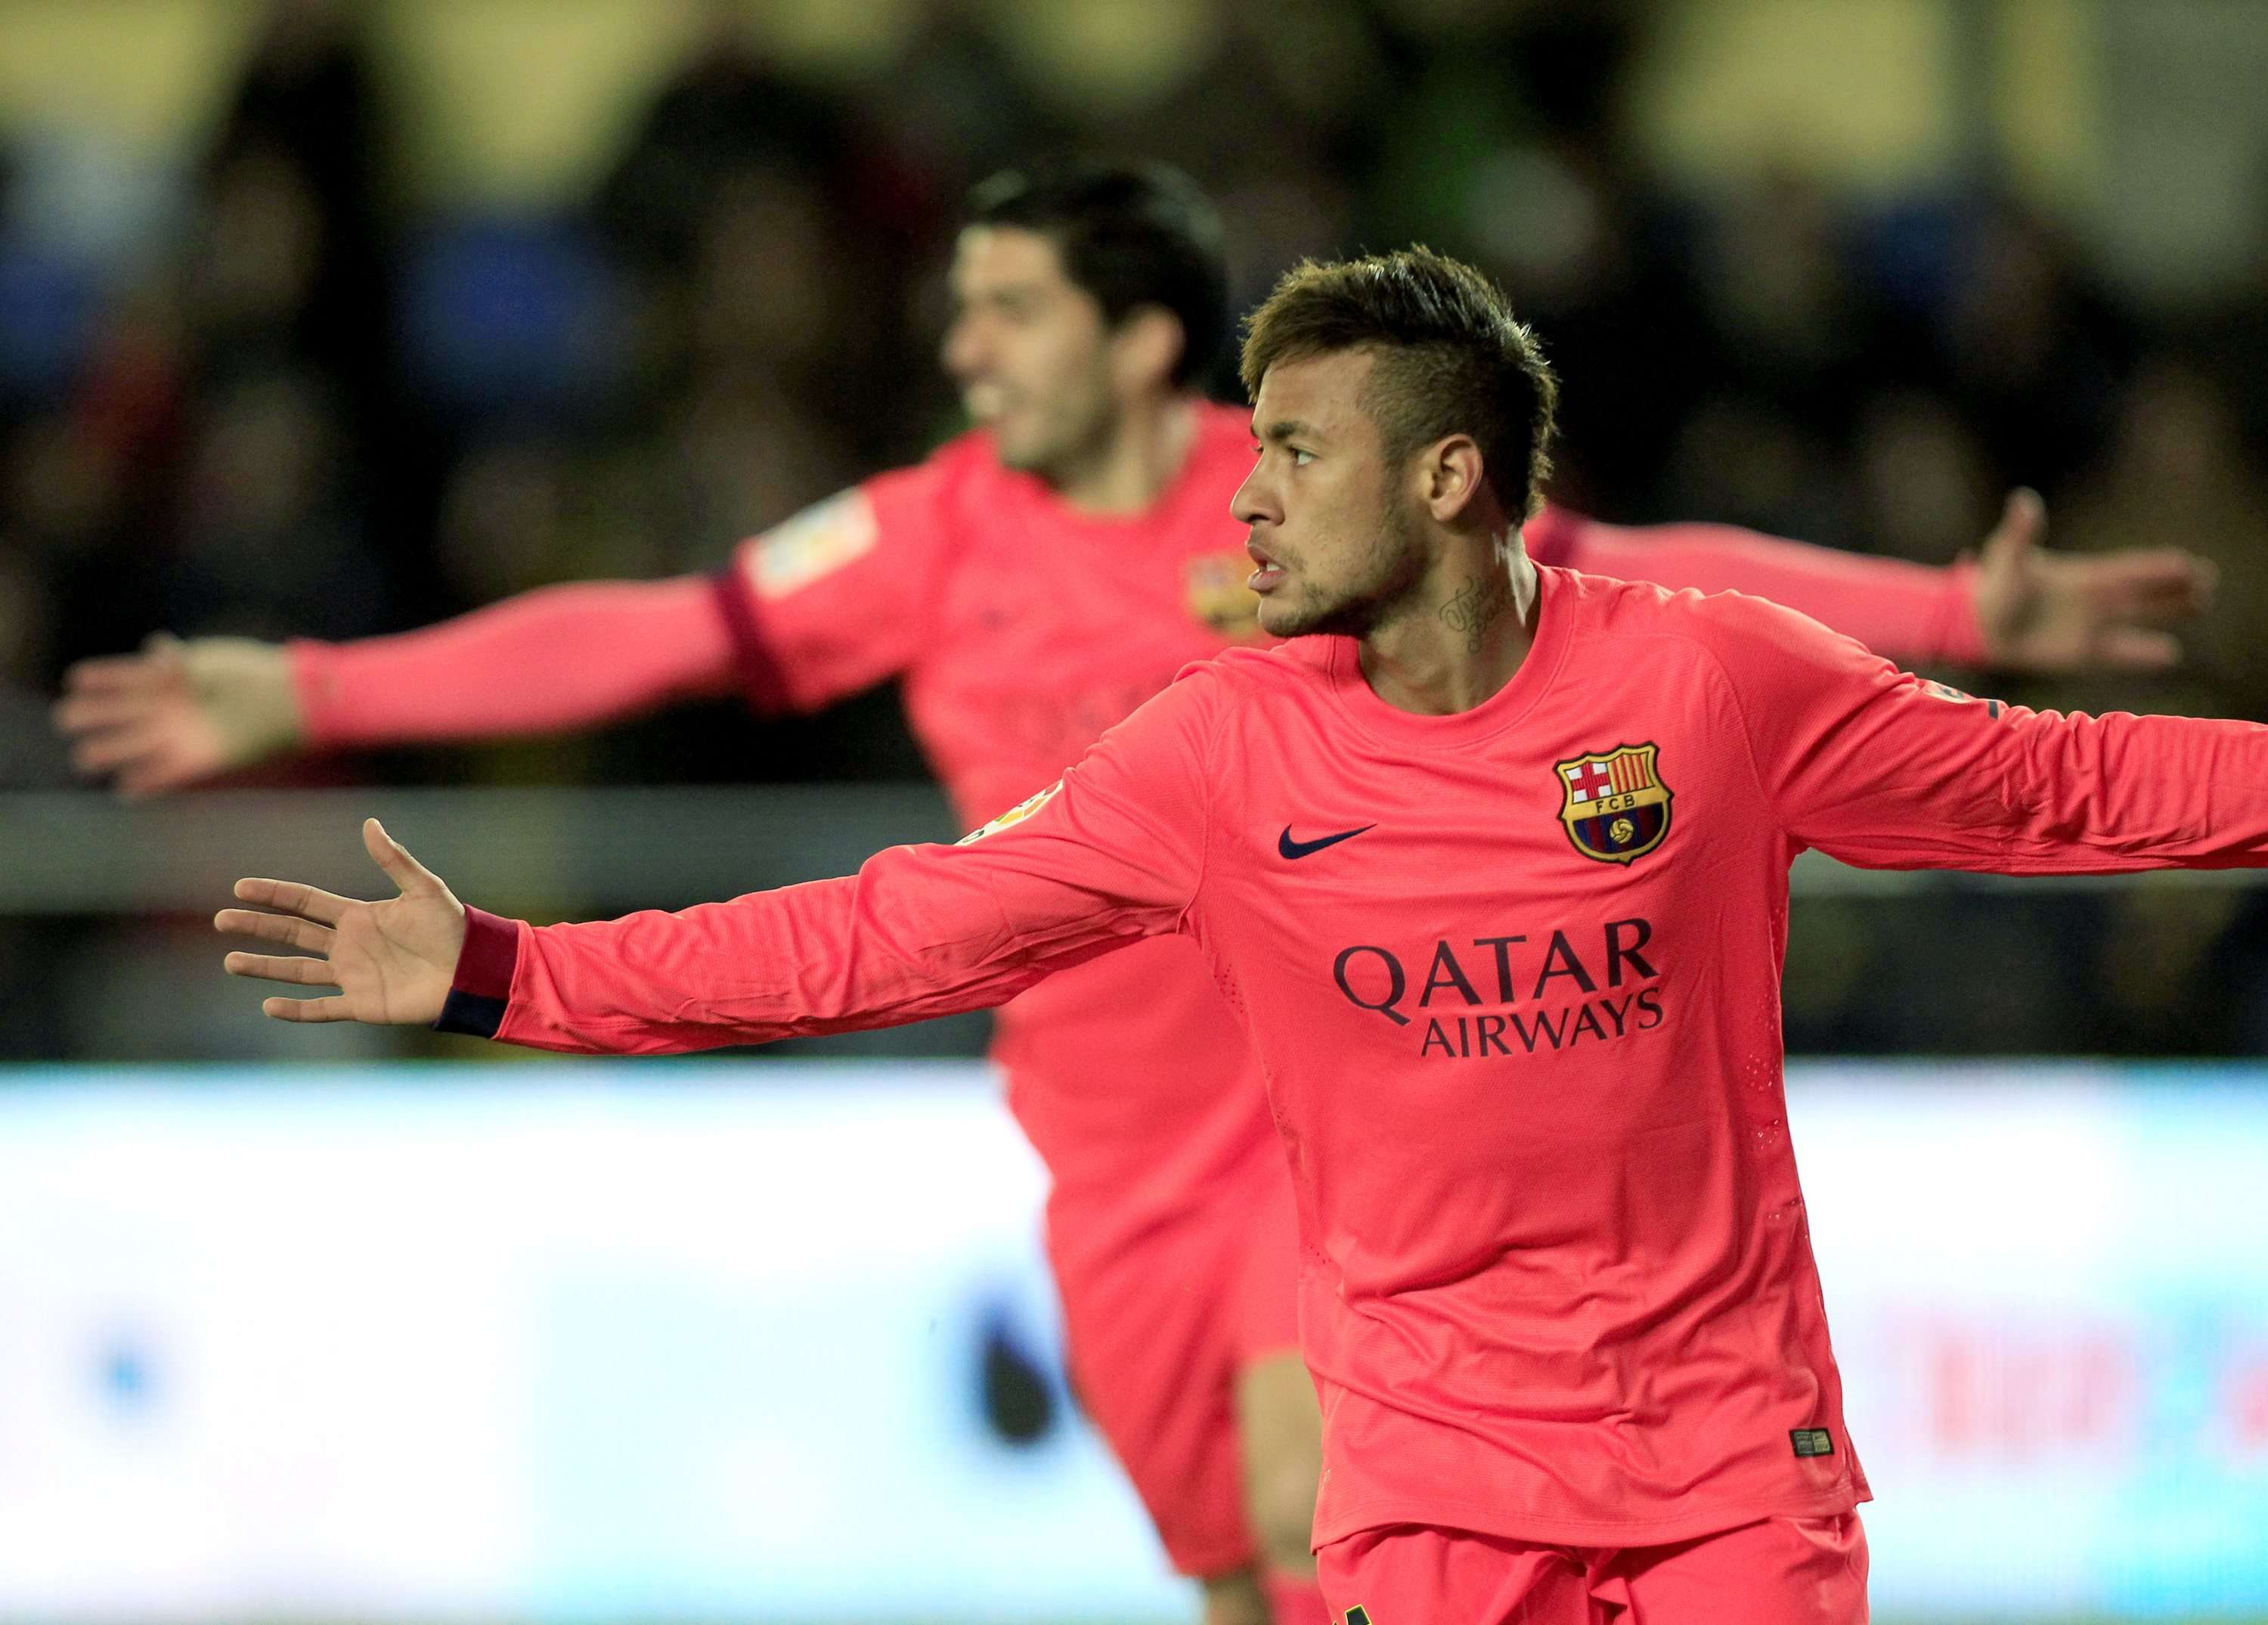 Barcelona's Neymar (front) celebrates near teammate Luis Suarez after he scored a goal against Villarreal during their Spanish King's Cup semi-final second leg soccer match at the Madrigal stadium in Villarreal March 4, 2015. REUTERS/Heino Kalis (SPAIN - Tags: SPORT SOCCER) Foto: HEINO KALIS/REUTERS